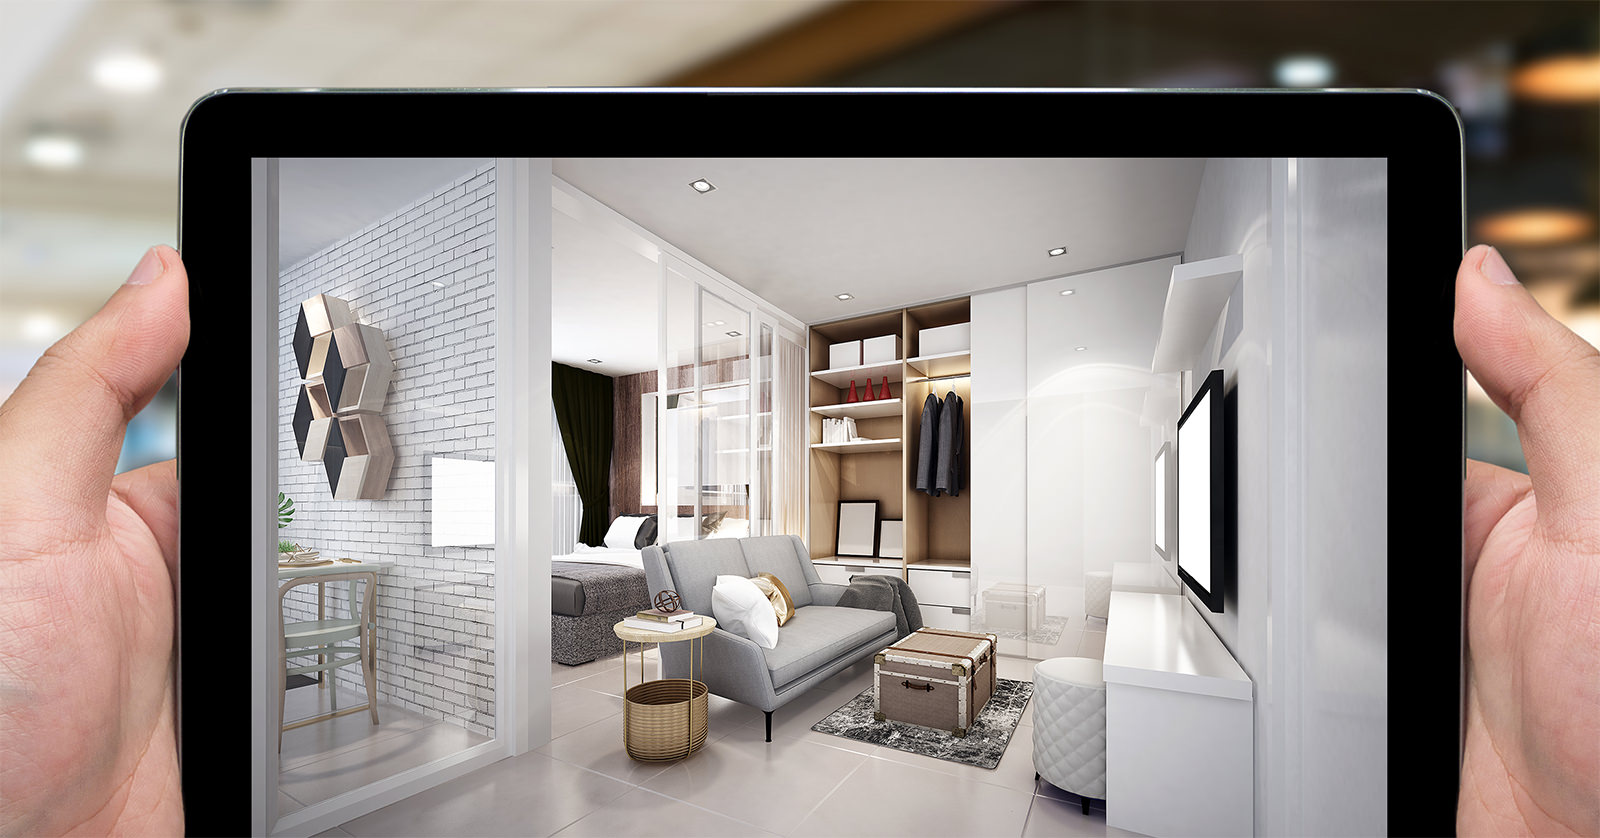 How cloud streaming interactive virtual tours adds value for pre-sale homes